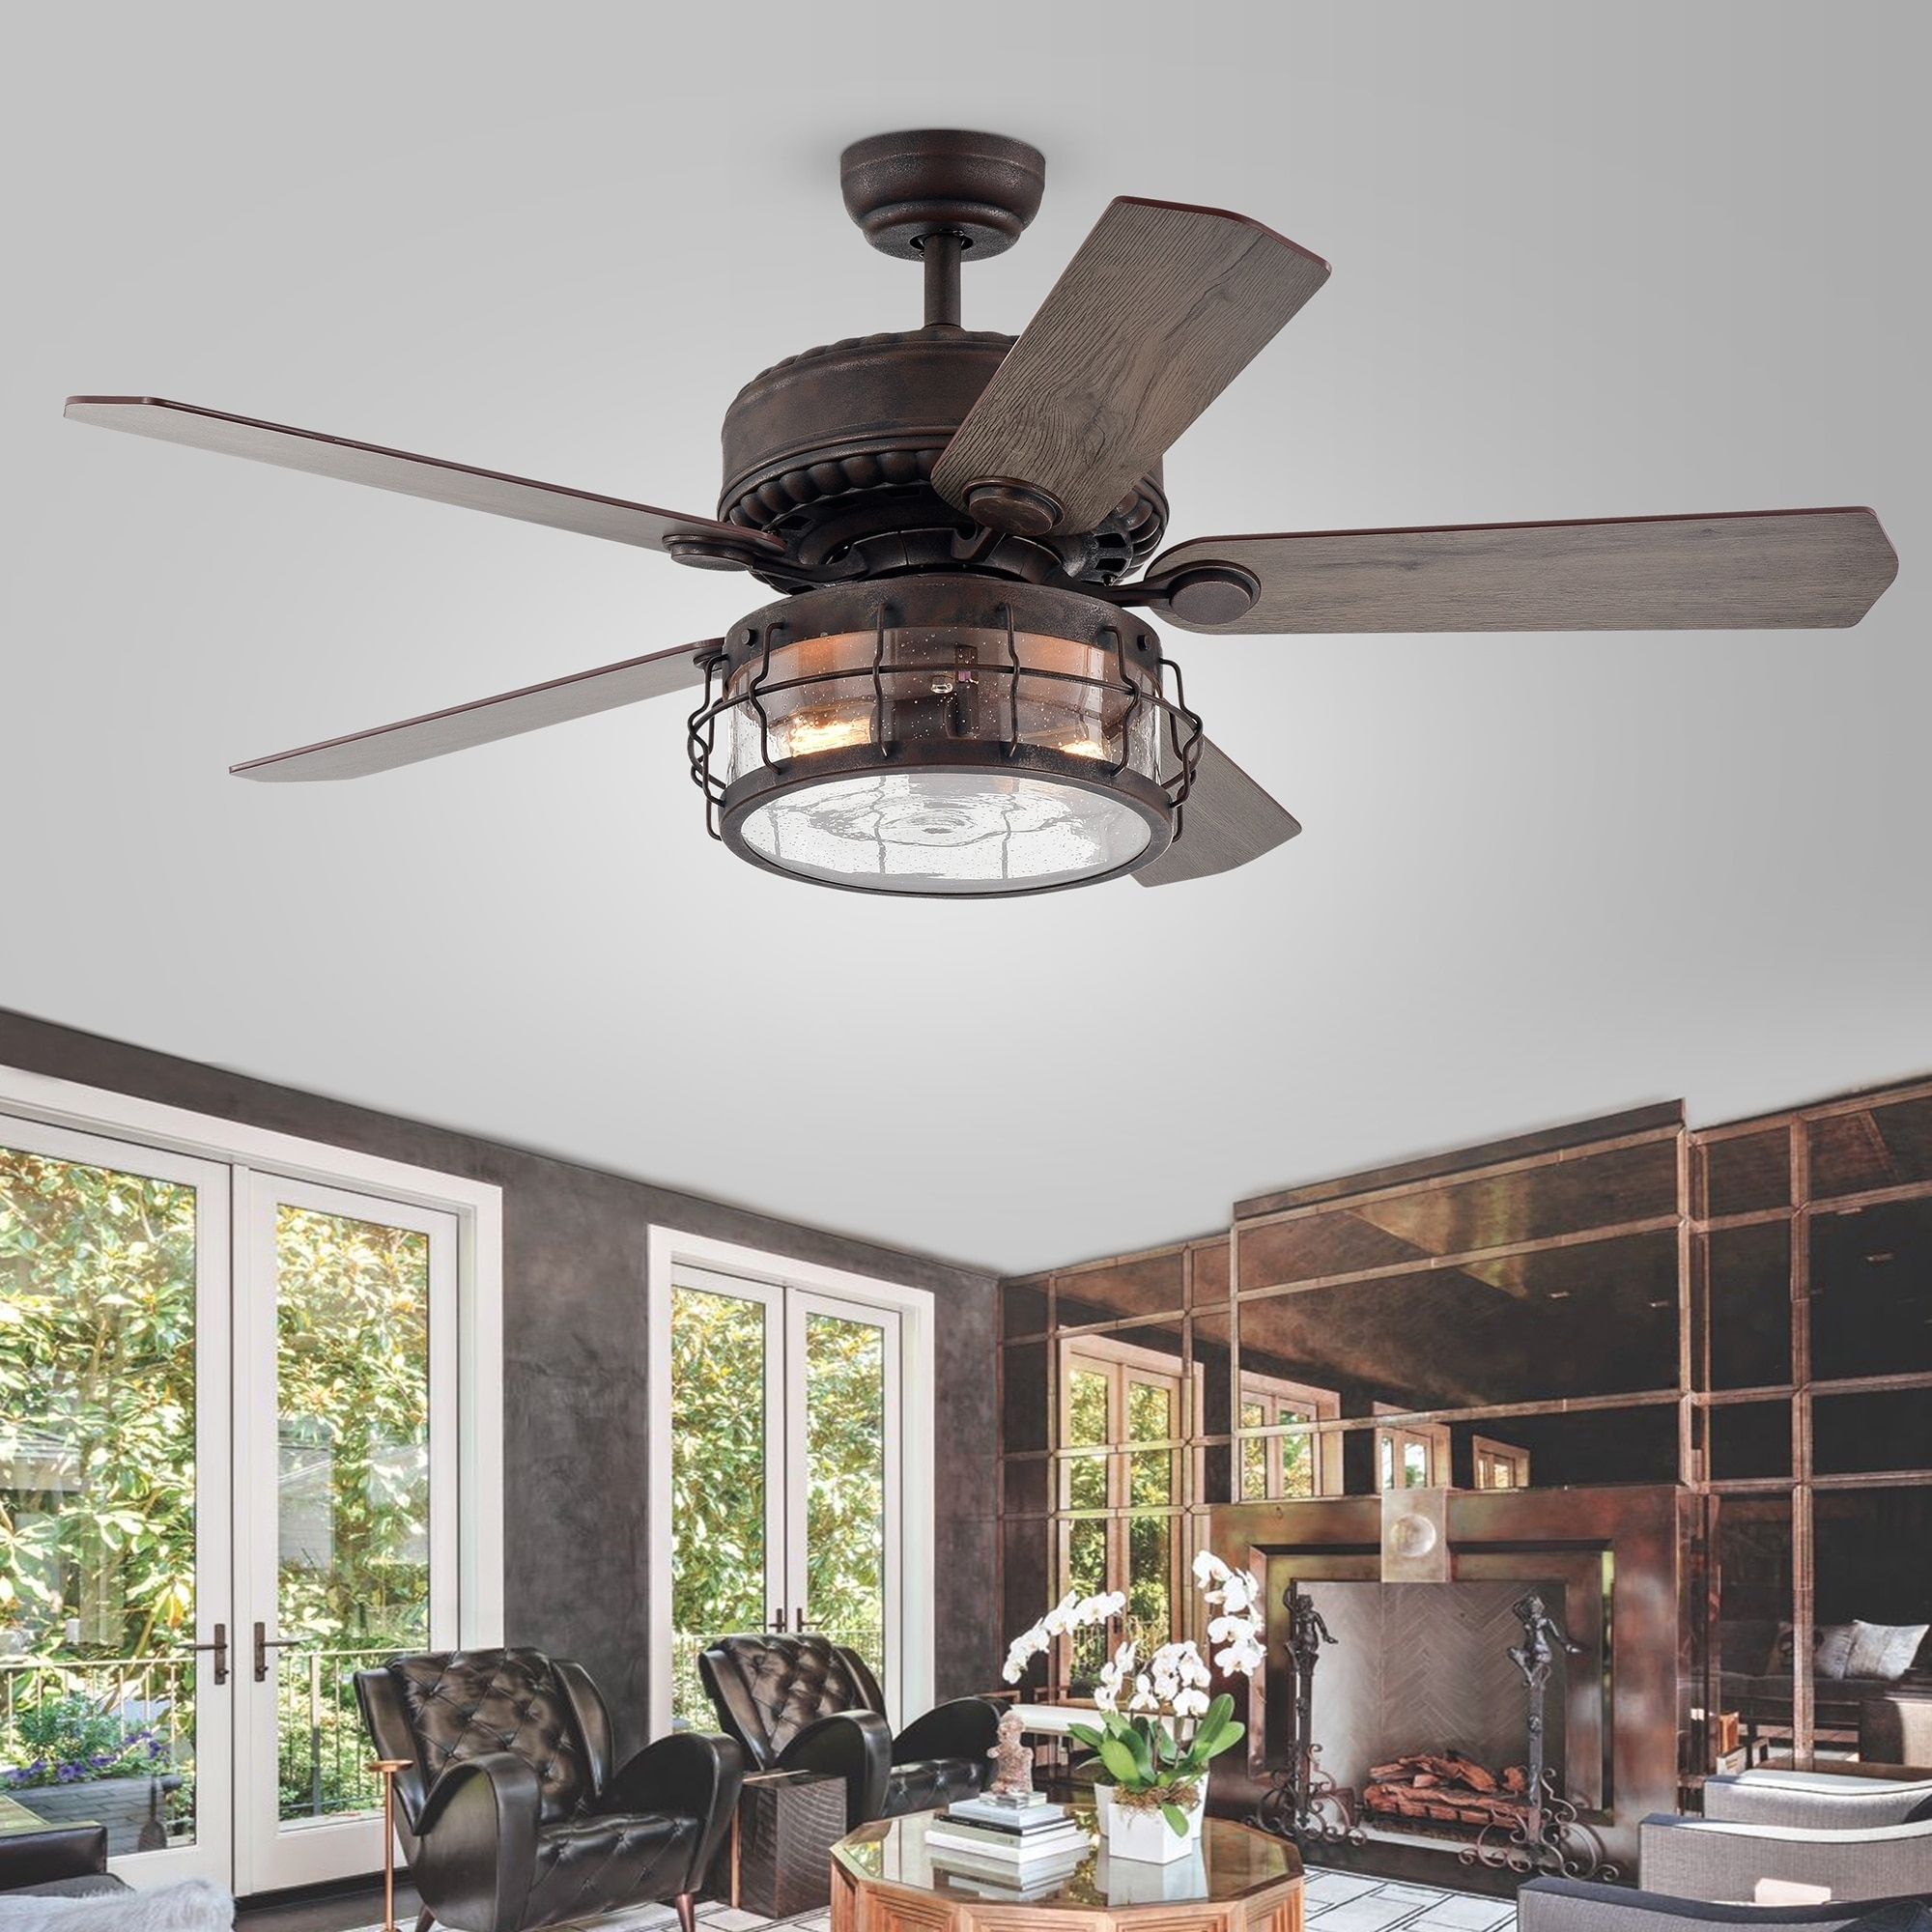 Rustic Contemporary 52 inch Ceiling Fan w Led Cage Light /& Remote Control Bronze